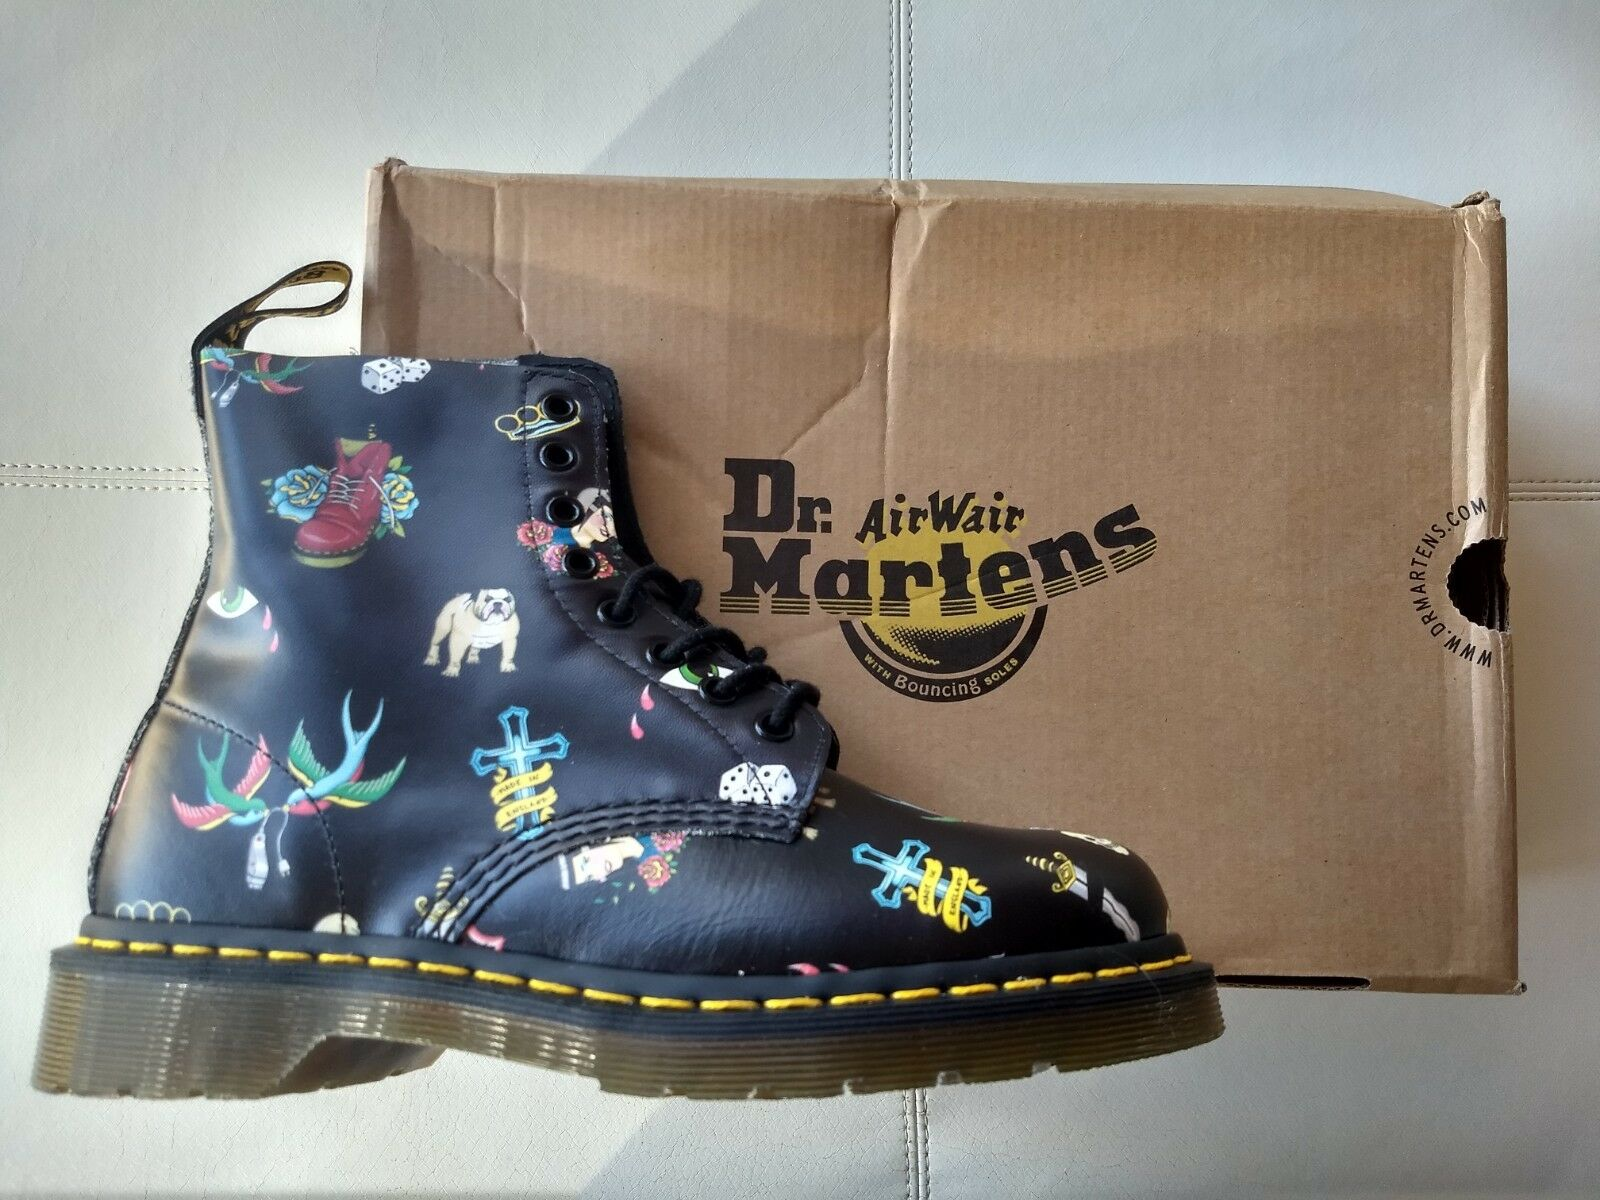 DOC DR. MARTENS BLACK SKINS TATTOO SOFTY T LEATHER BOOTS NEW WITH BOX UNISEX 6UK